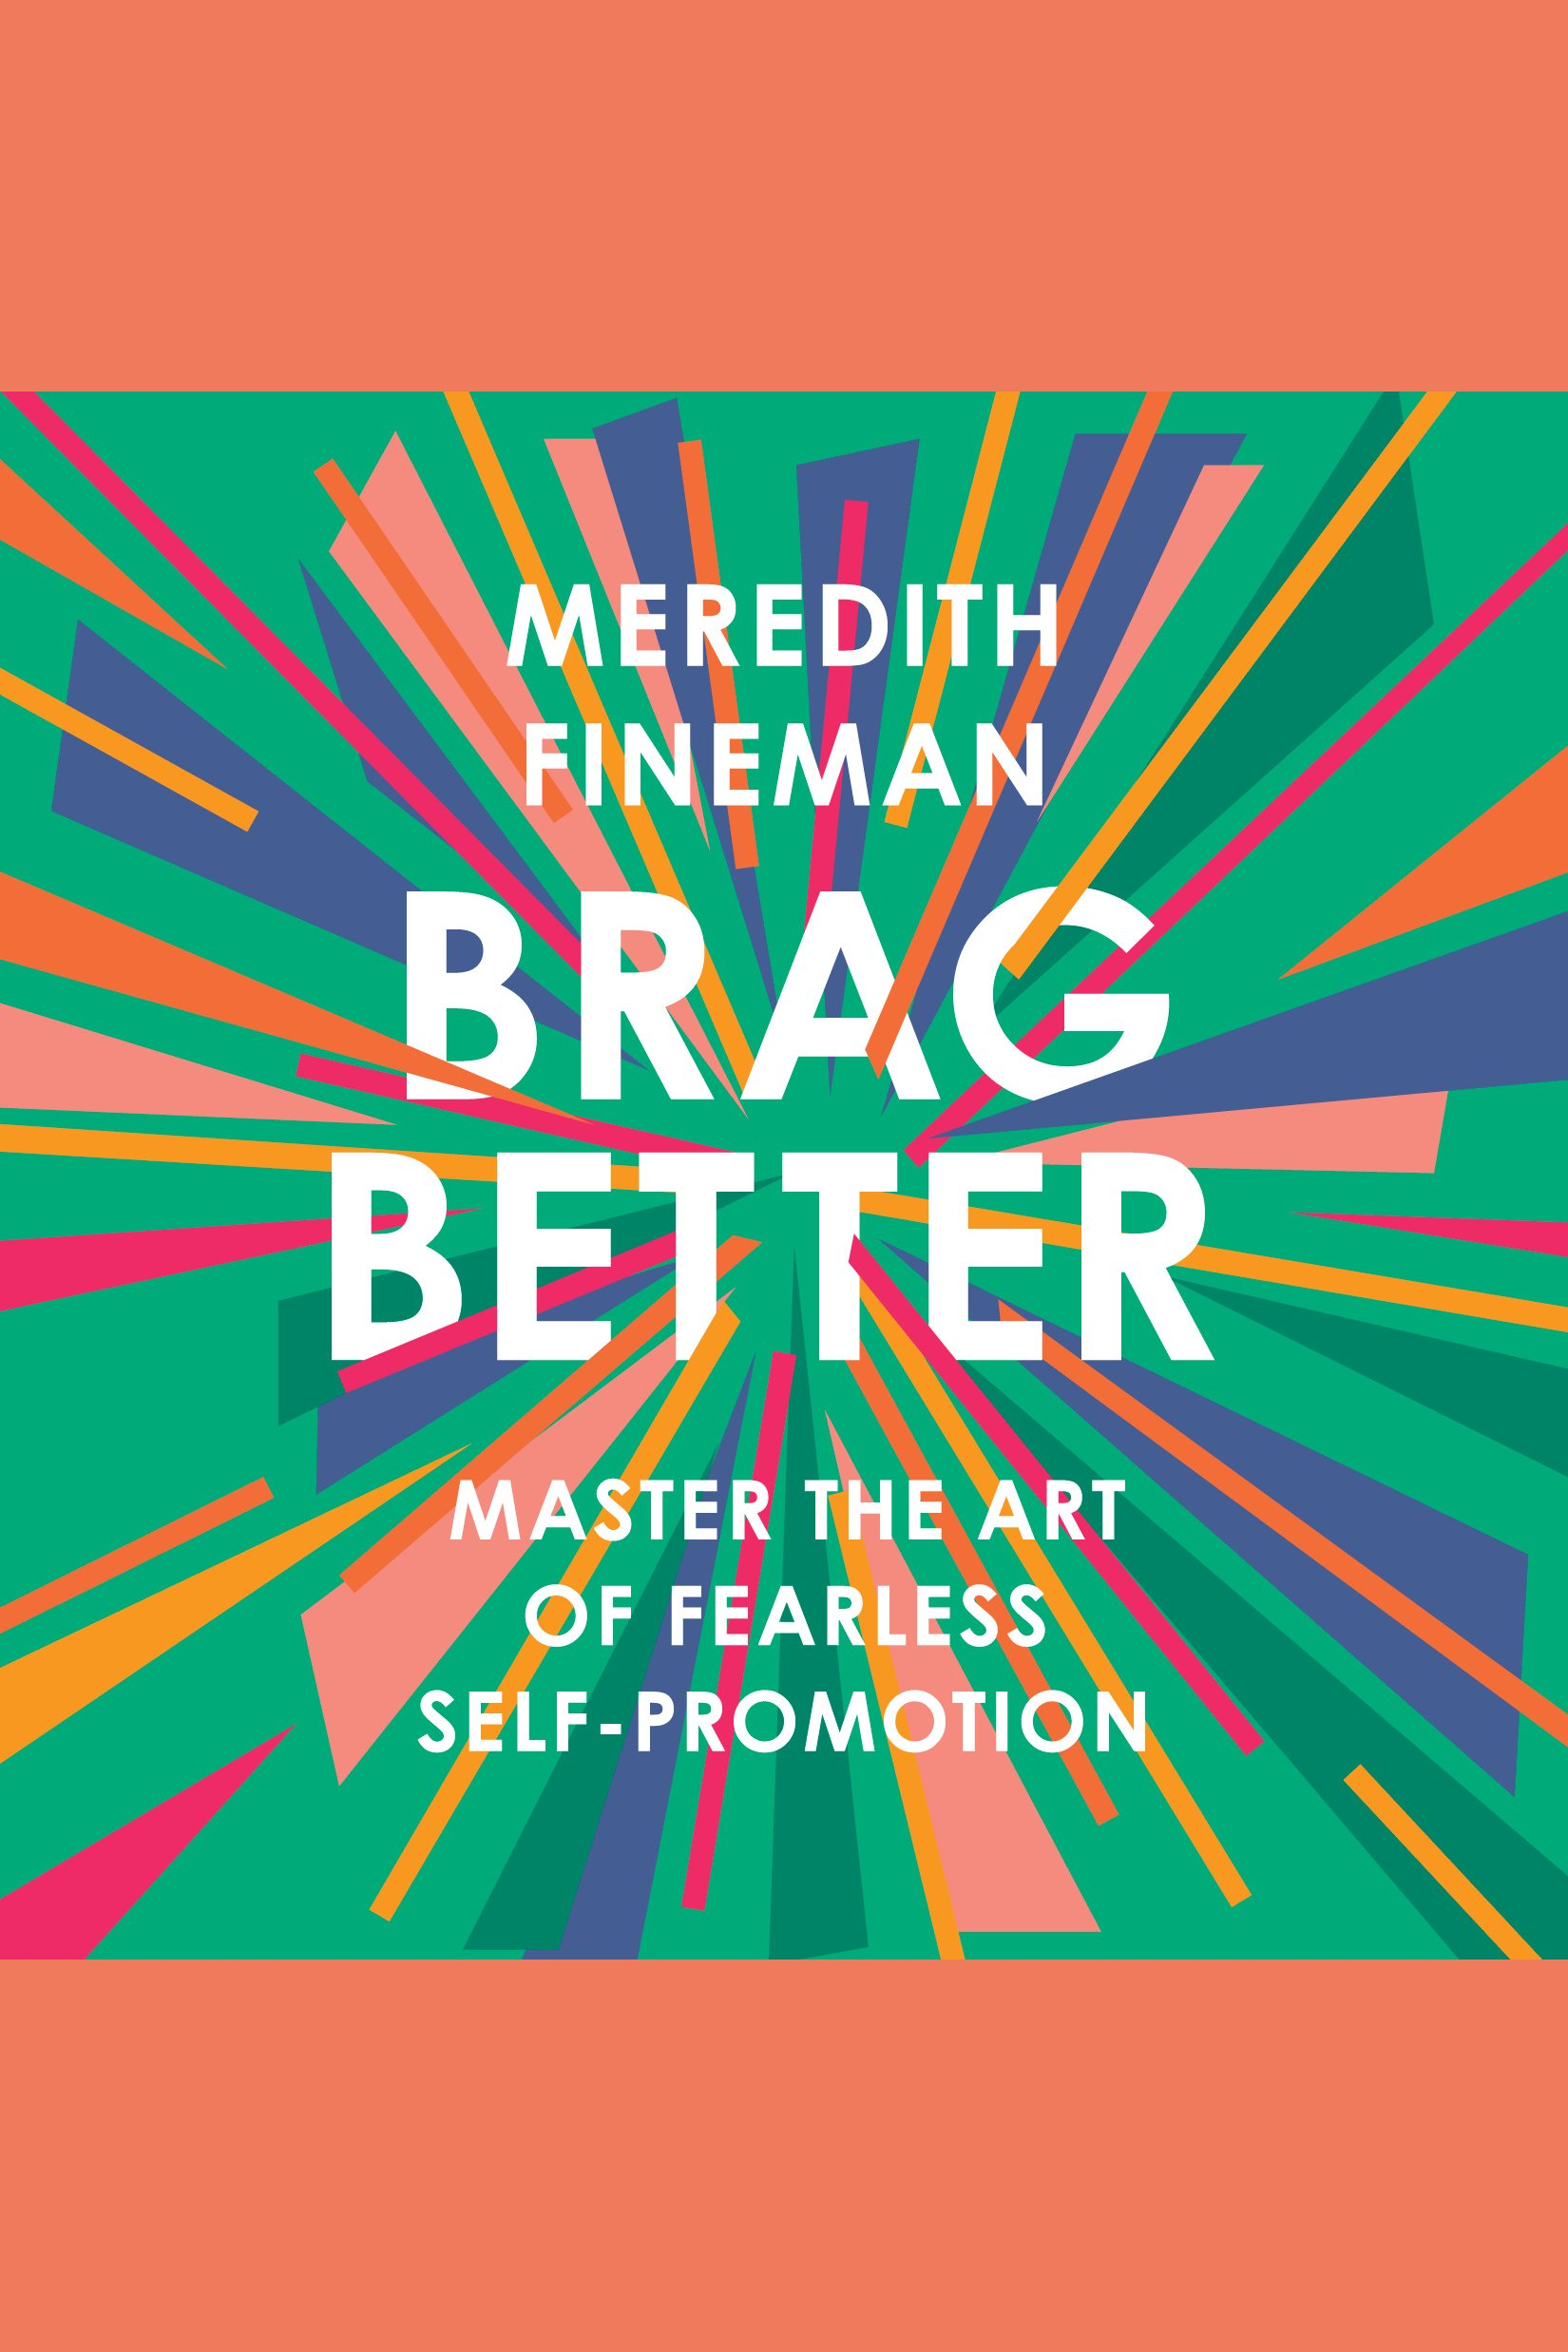 Brag Better Master the Art of Fearless Self-Promotion